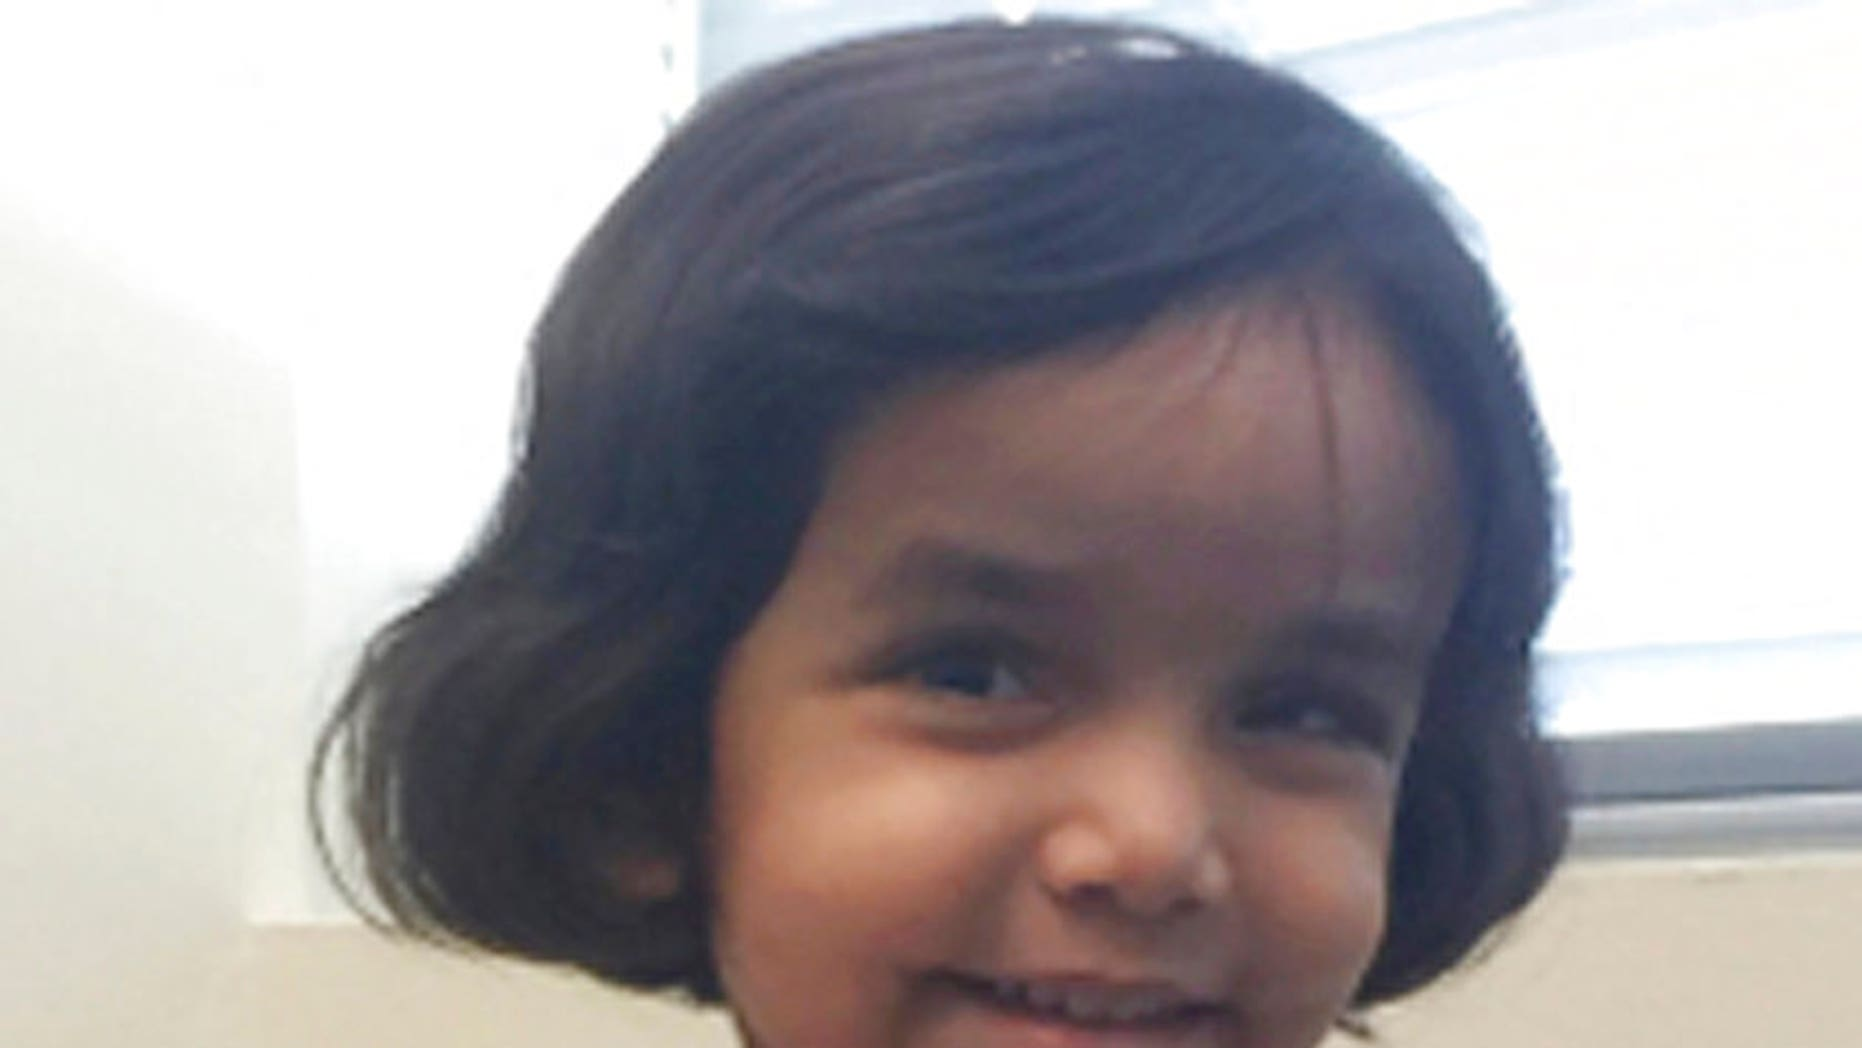 Sherin Mathews, 3, went missing Oct. 7 after her father, Wesley, left her outside in an alleyway at 3 a.m.